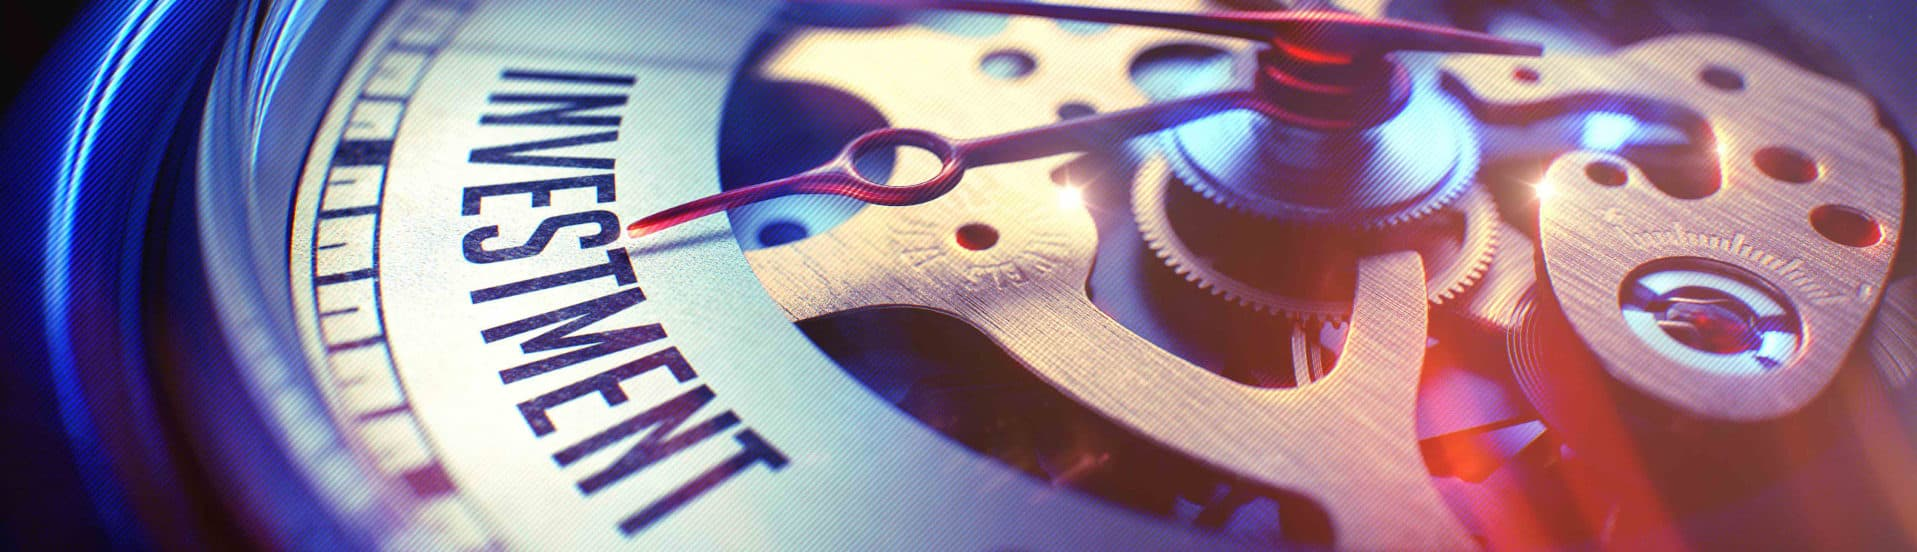 image of gears like watch with hand pointing to investment